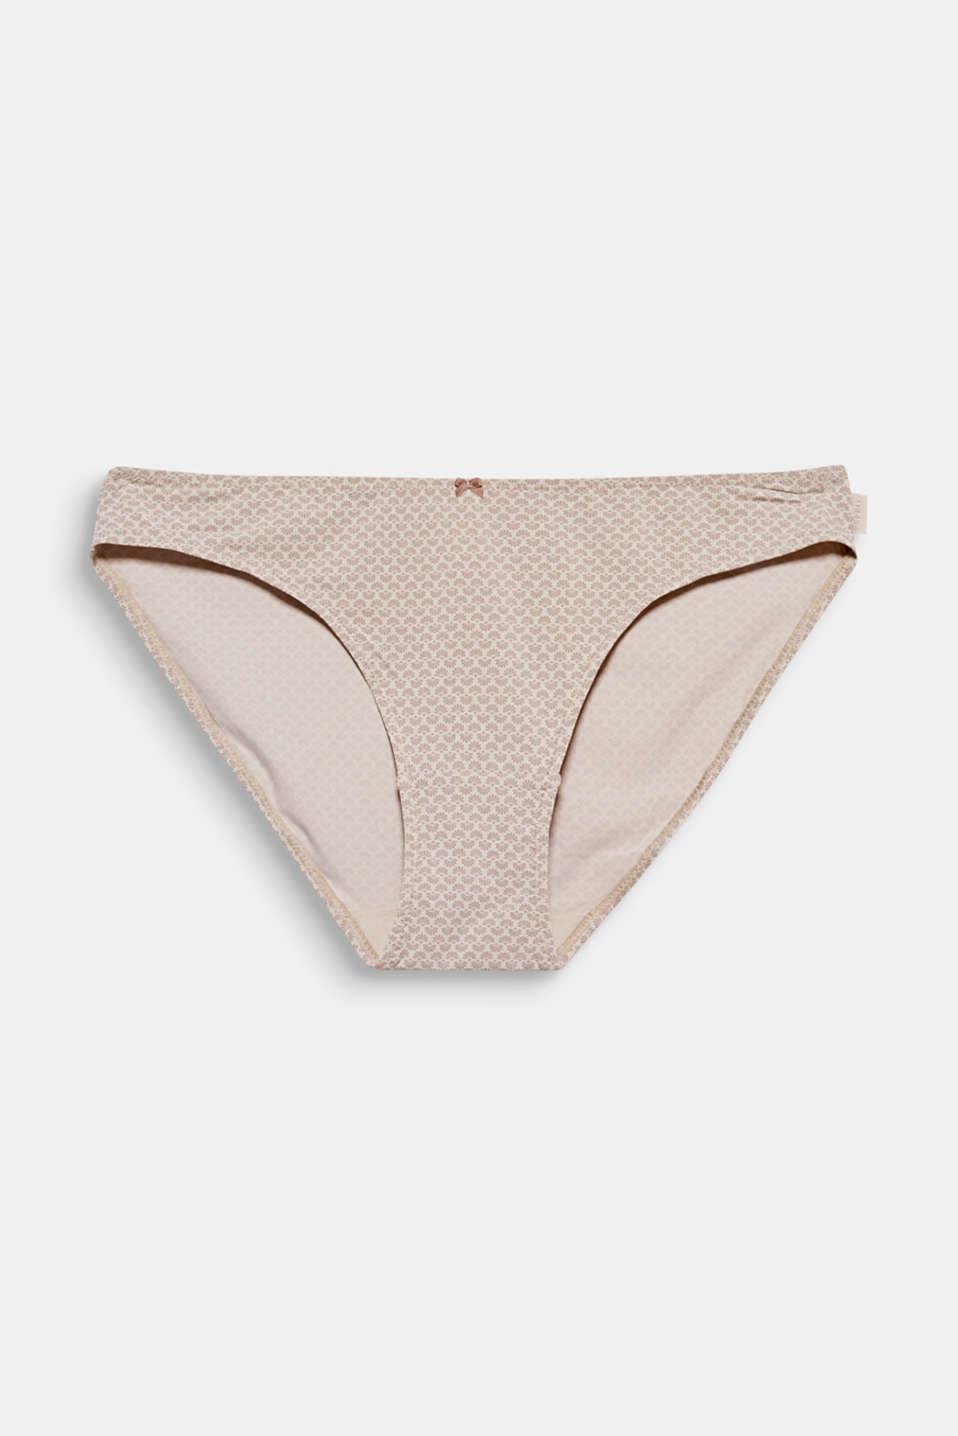 BROOME FASHION collection – The stylised shell print accentuates the light and airy style of these hipster briefs in a smooth material mix!